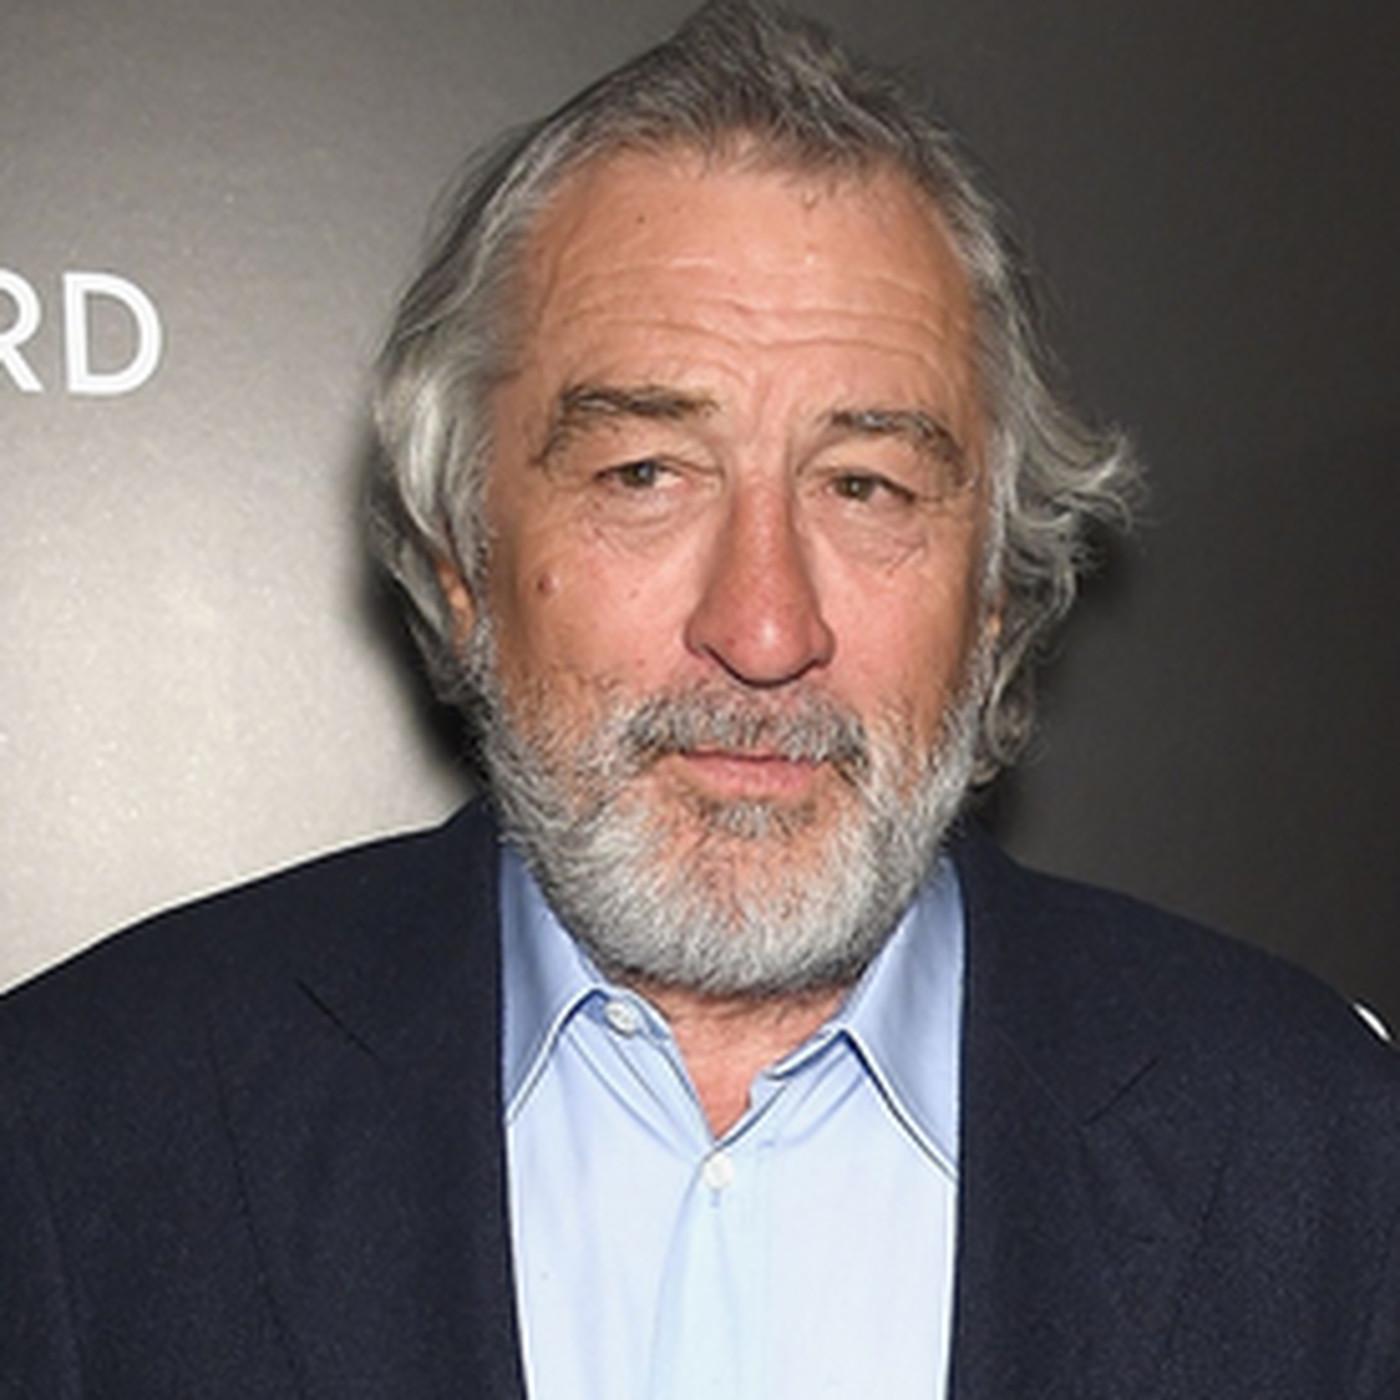 Robert De Niro and RFK Jr. have joined forces to push vaccine nonsense - Vox